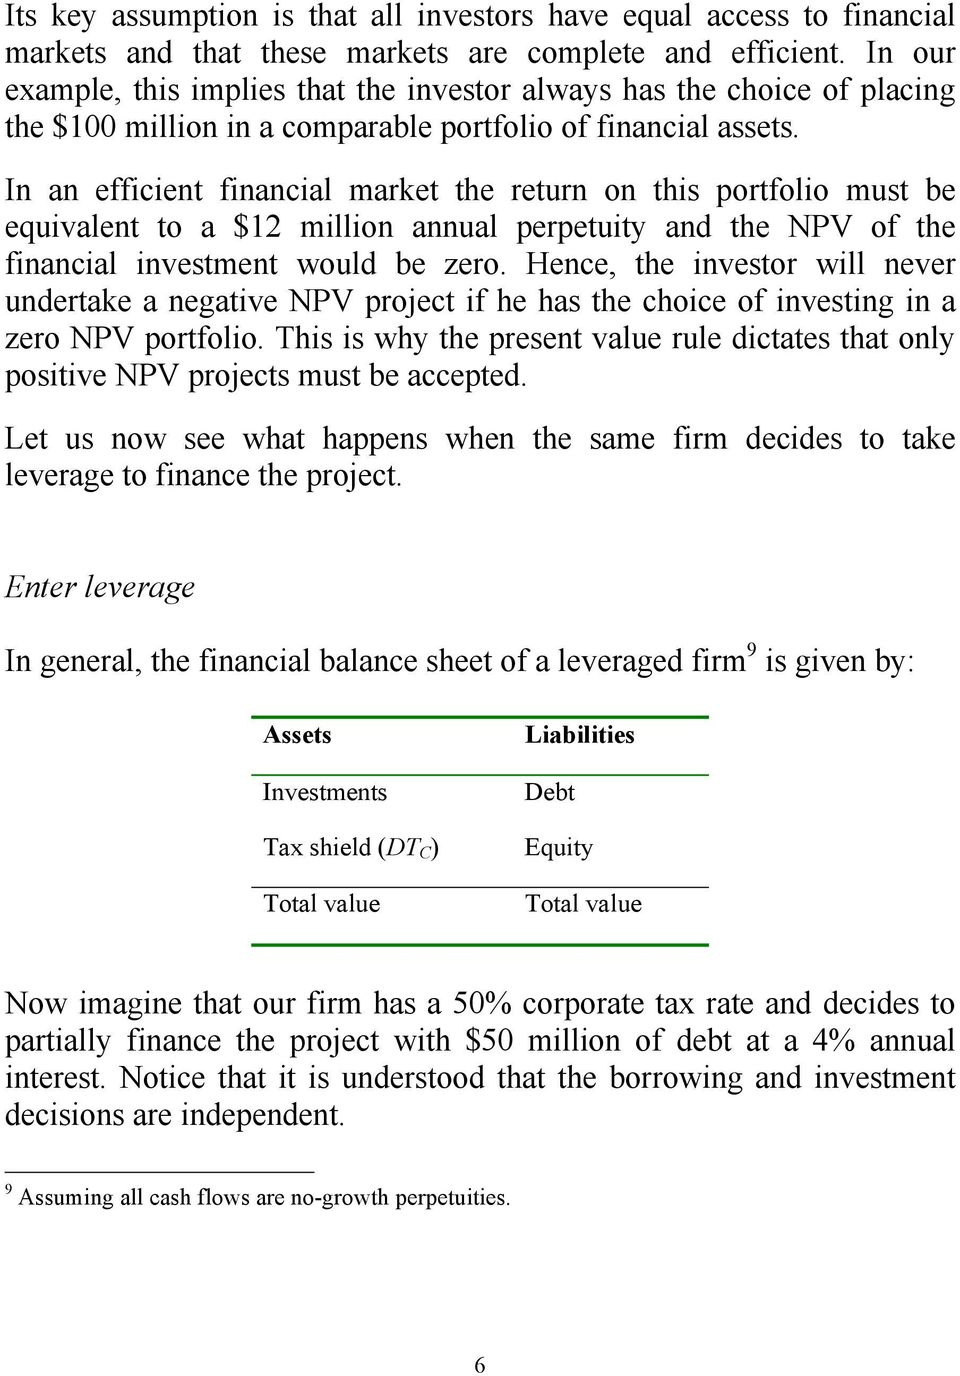 In an efficient financial market the return on this portfolio must be equivalent to a $12 million annual perpetuity and the NPV of the financial investment would be zero.